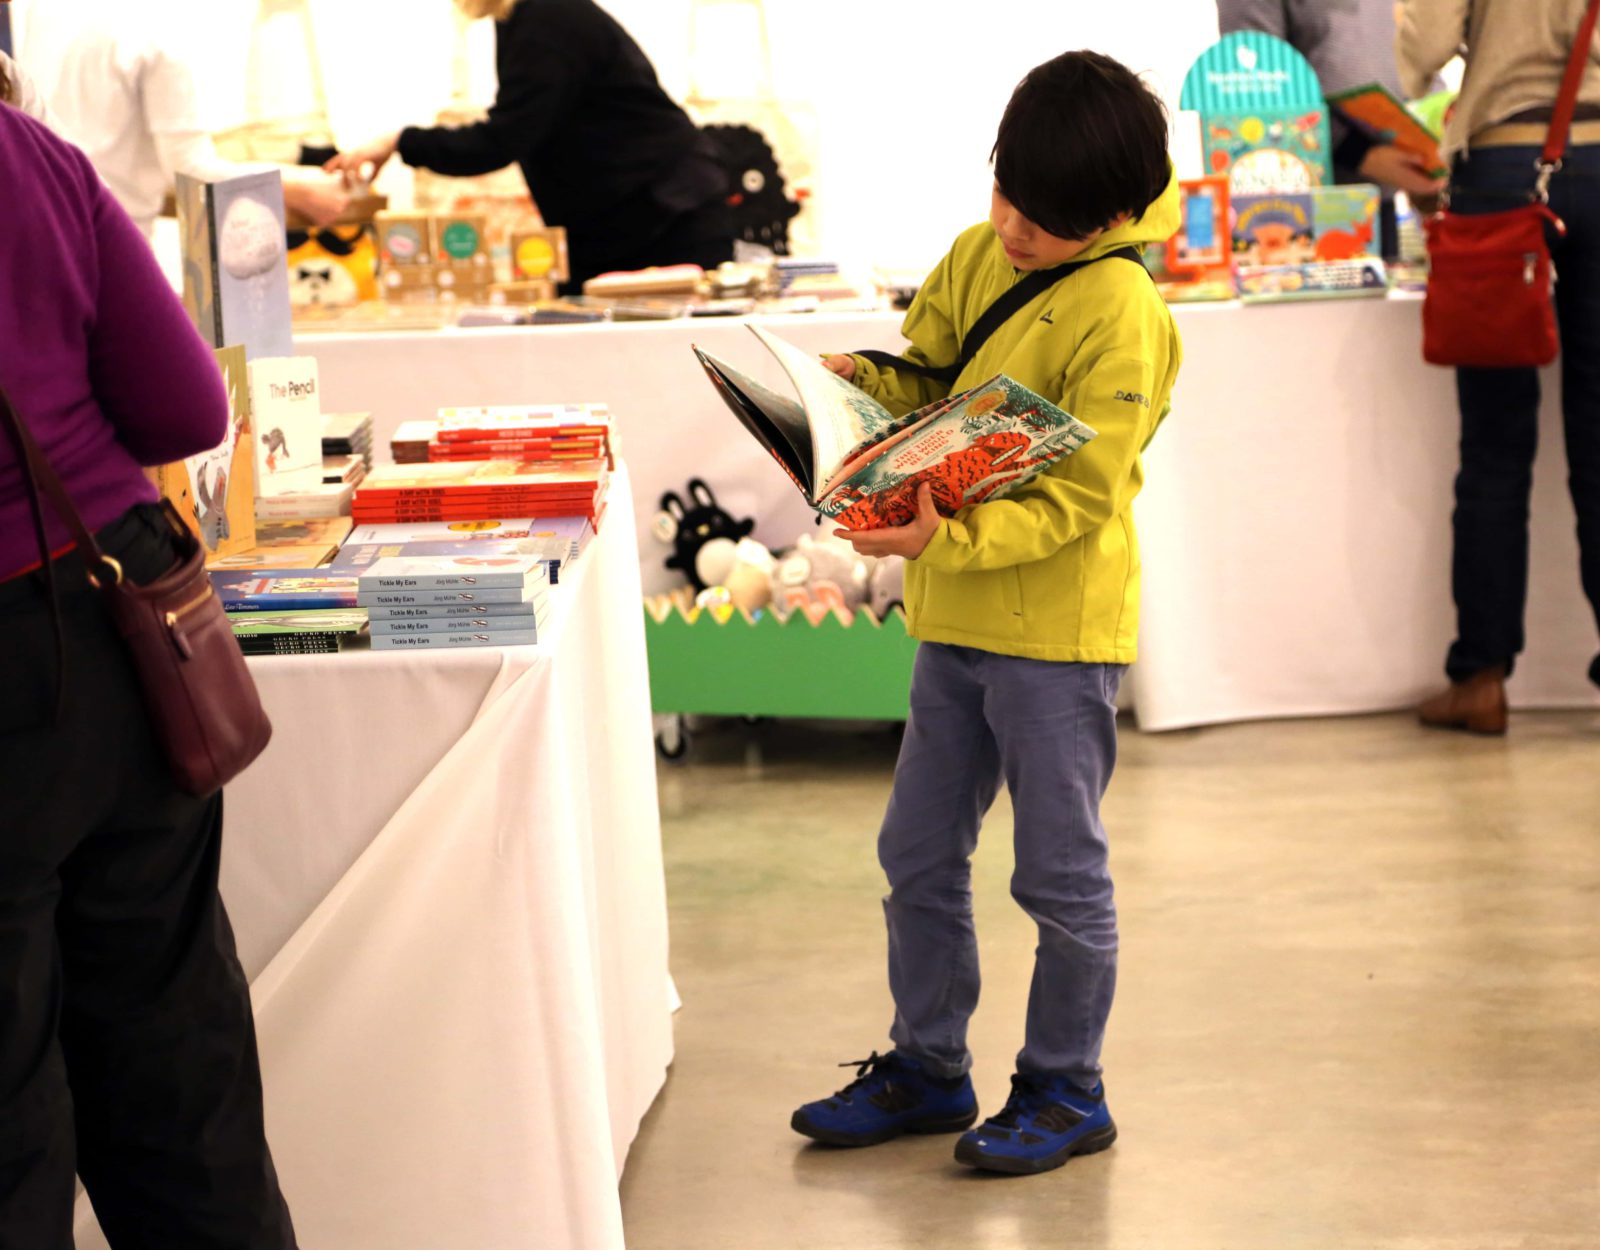 The 2017 London Children's Book Fair